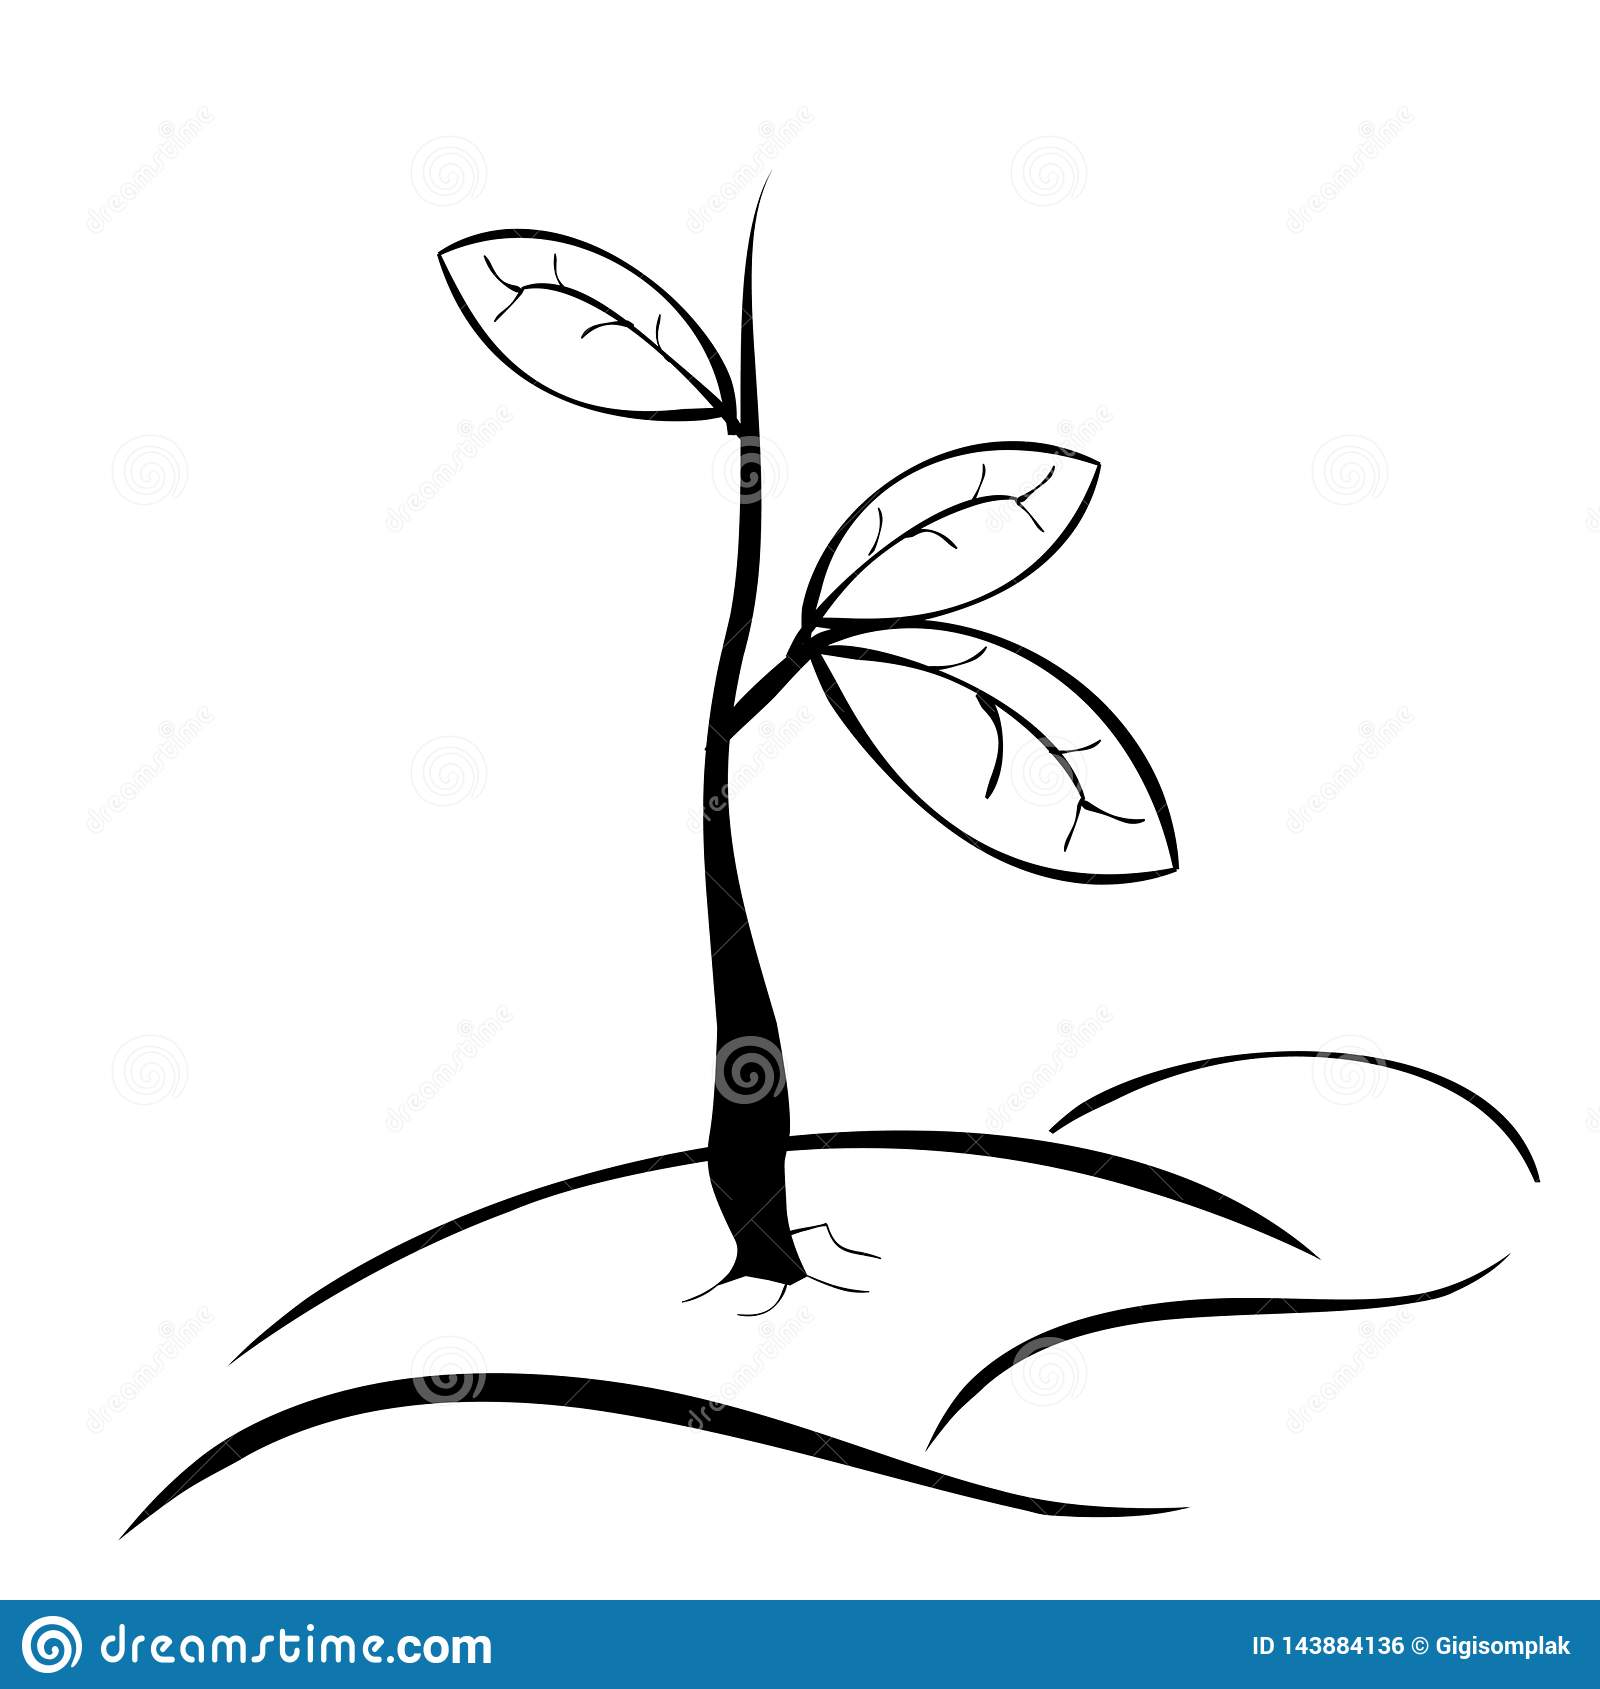 Simple Hand Draw Sketch Black And White Small Plant With Three Leaf Stock Vector Illustration Of Wildlife Vector 143884136